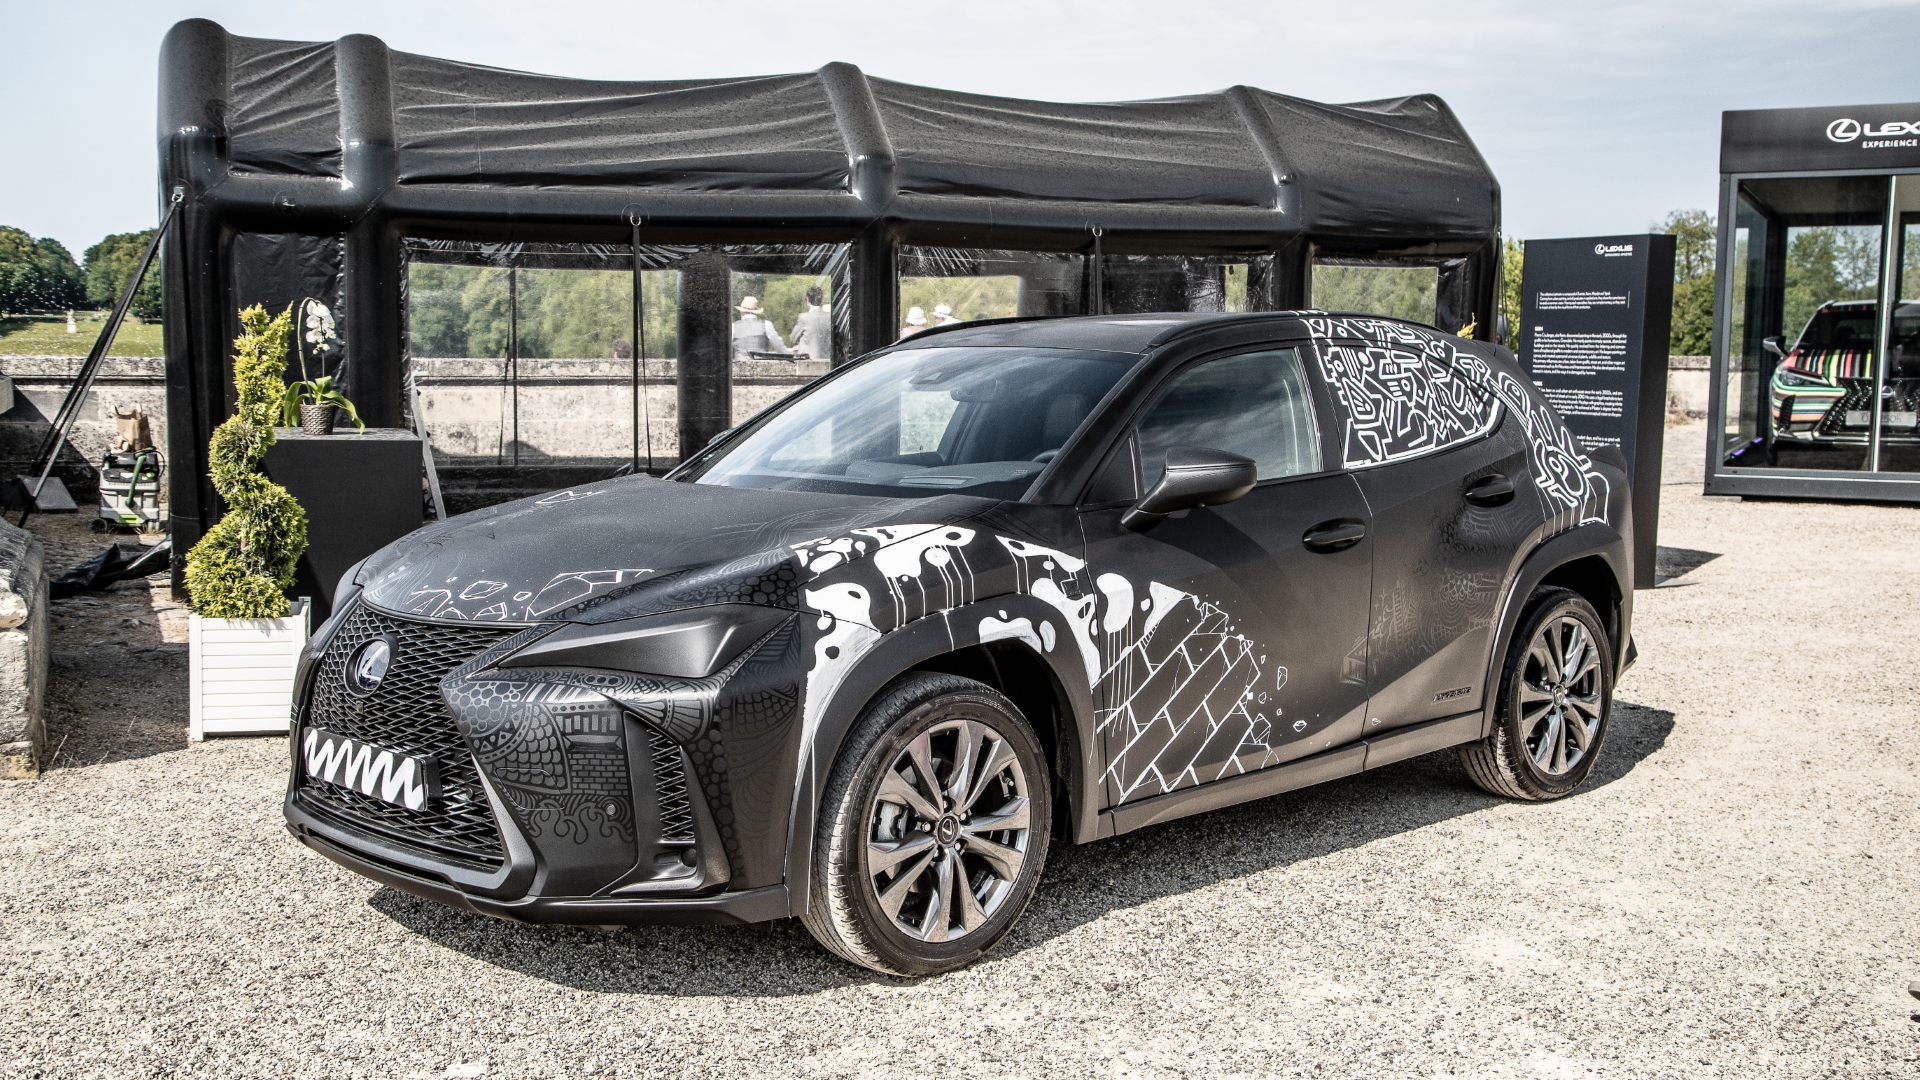 Lexus Reveals Winners Of The UX Art Car Competition body image 2